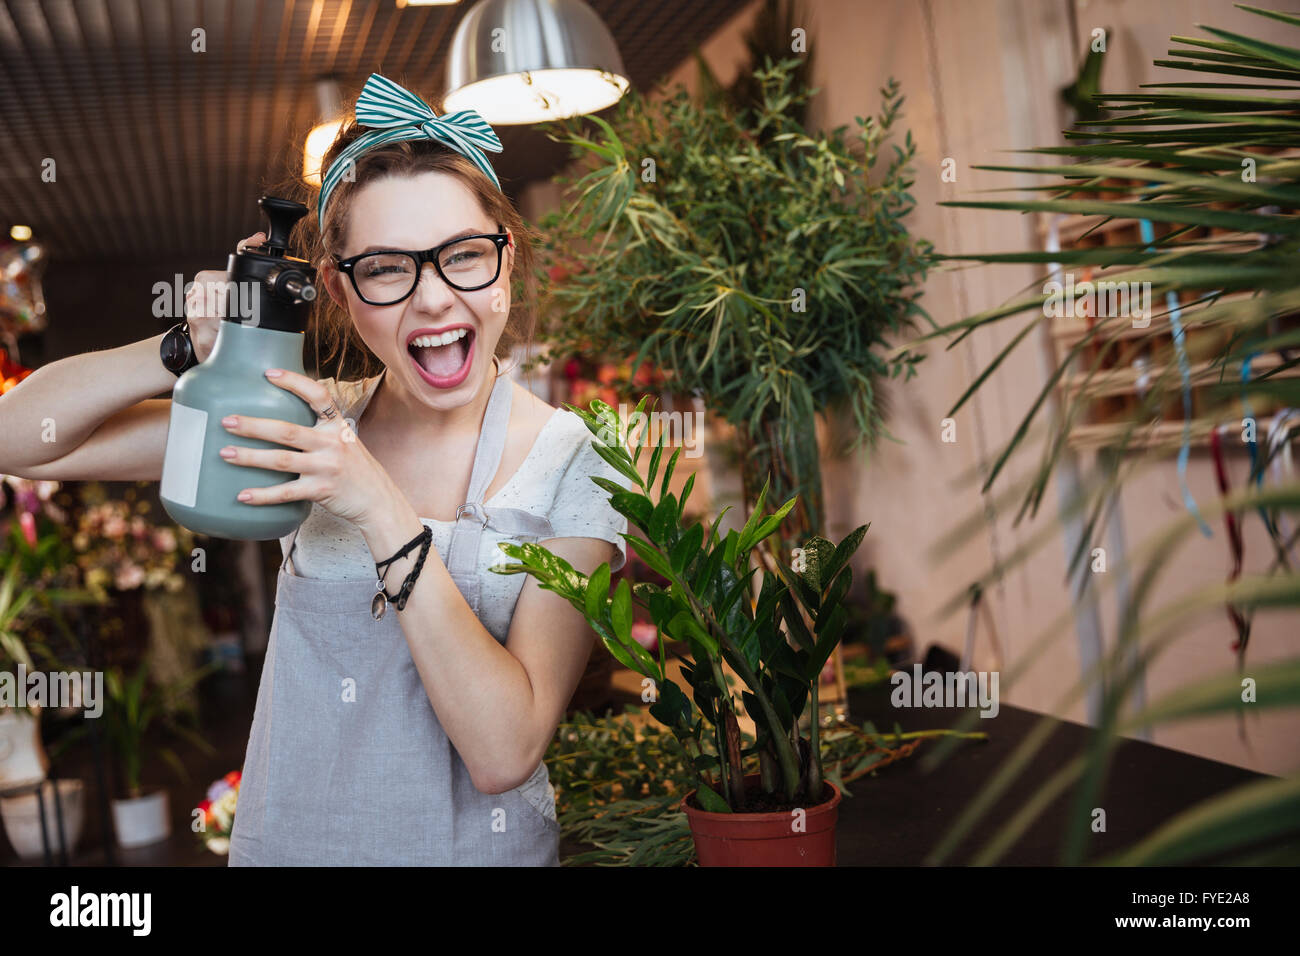 Funny pretty young woman florist watering flowers and pointing with water sprayer on you - Stock Image